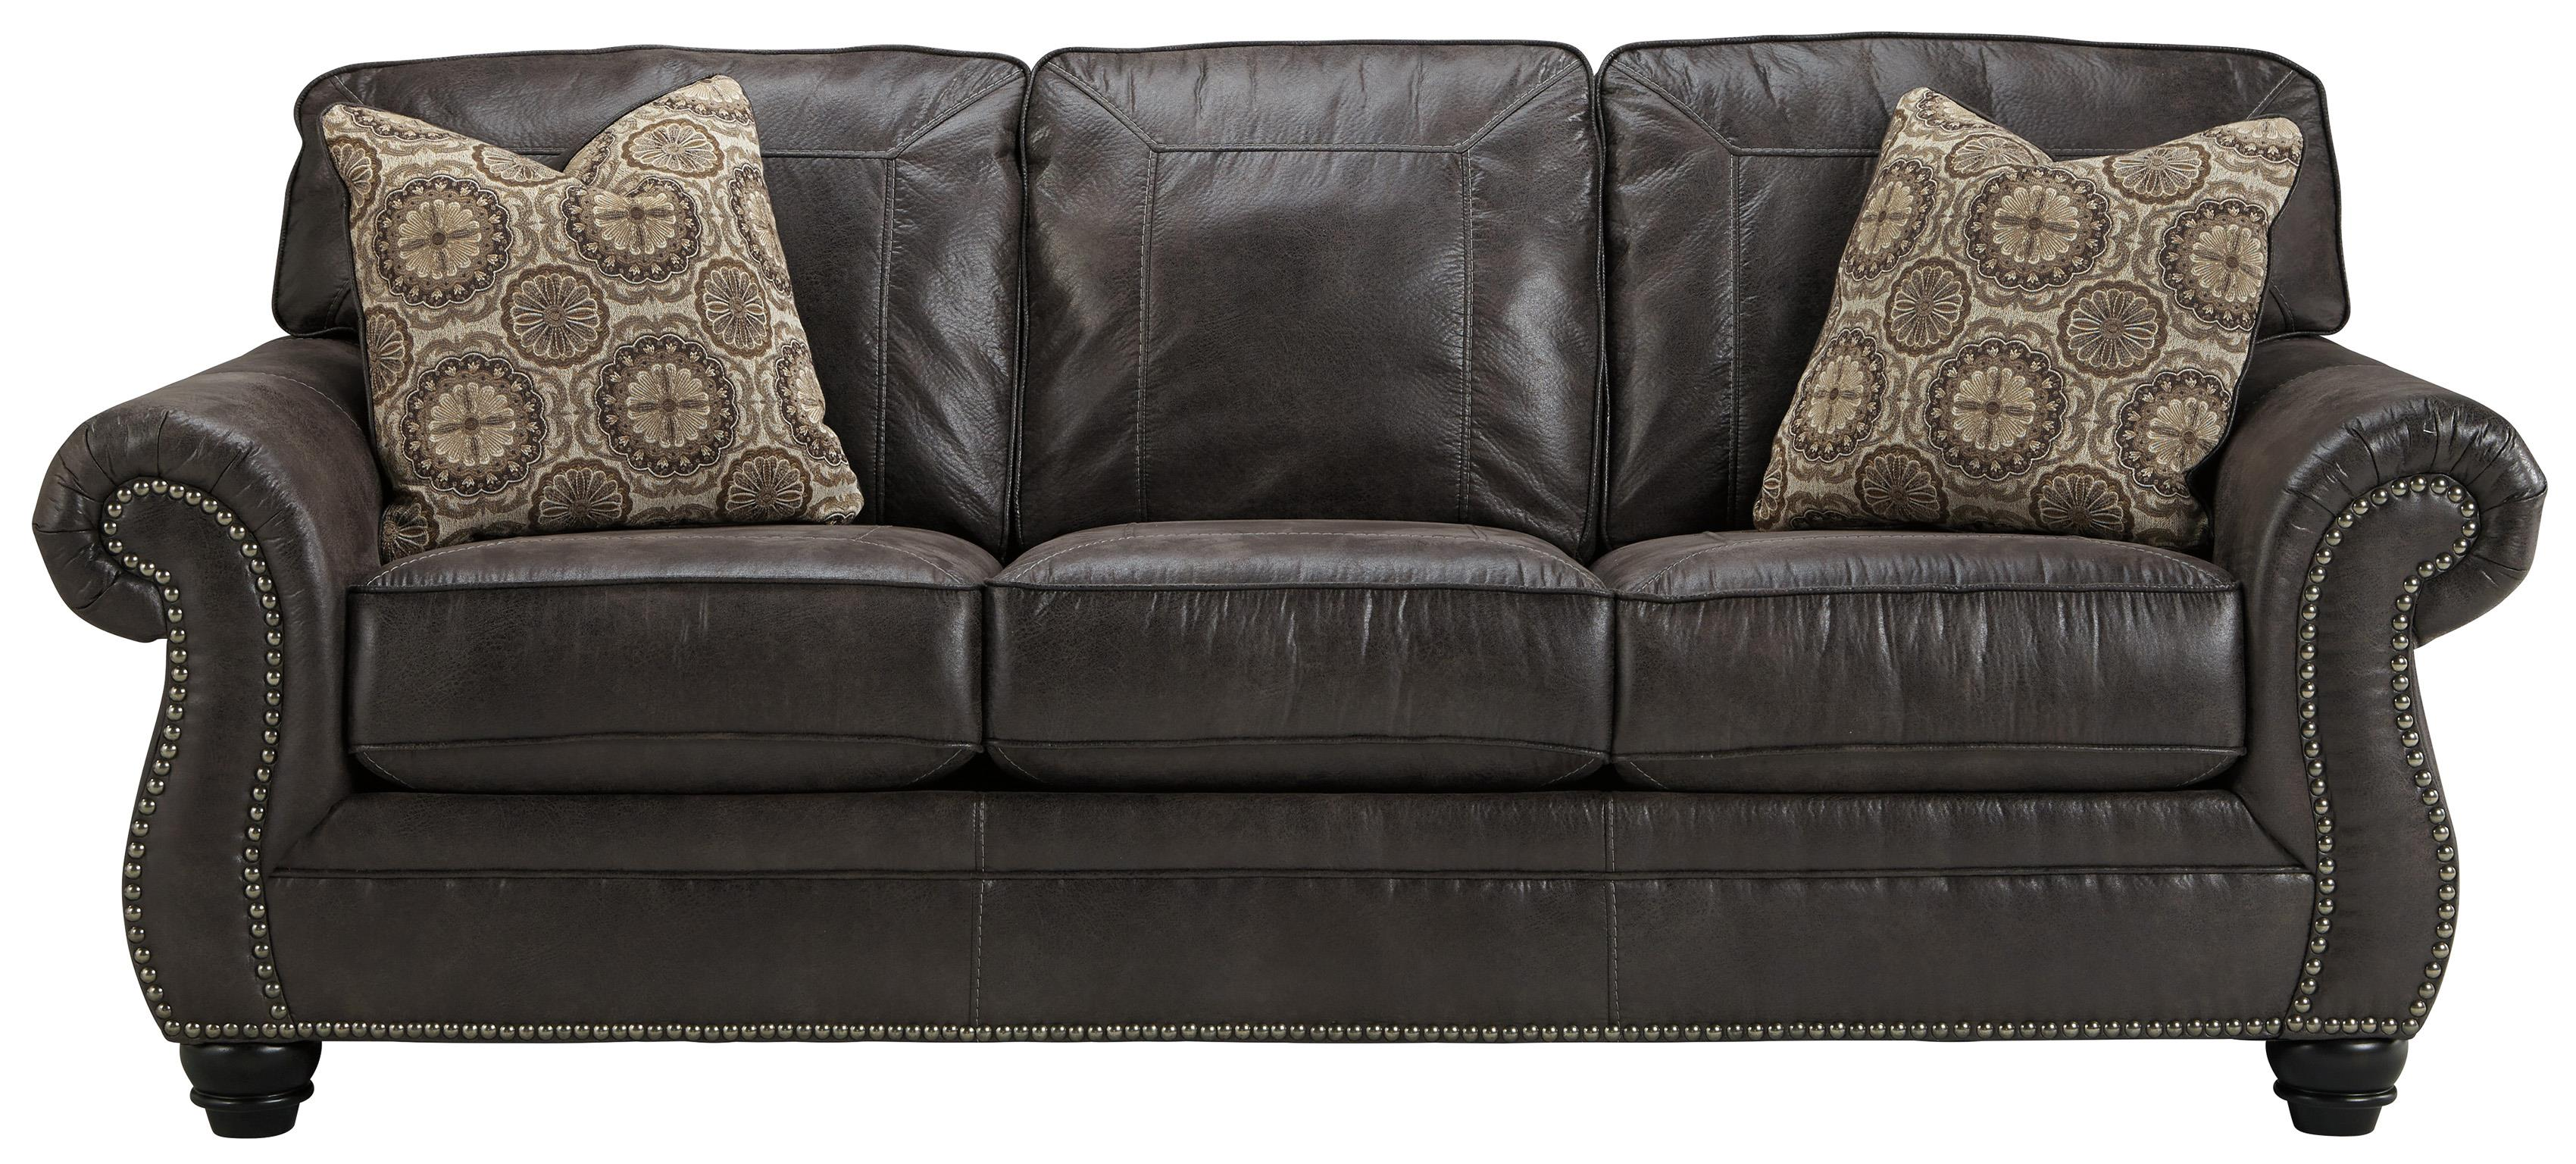 Breville Queen Sofa Sleeper by Benchcraft at Zak's Warehouse Clearance Center